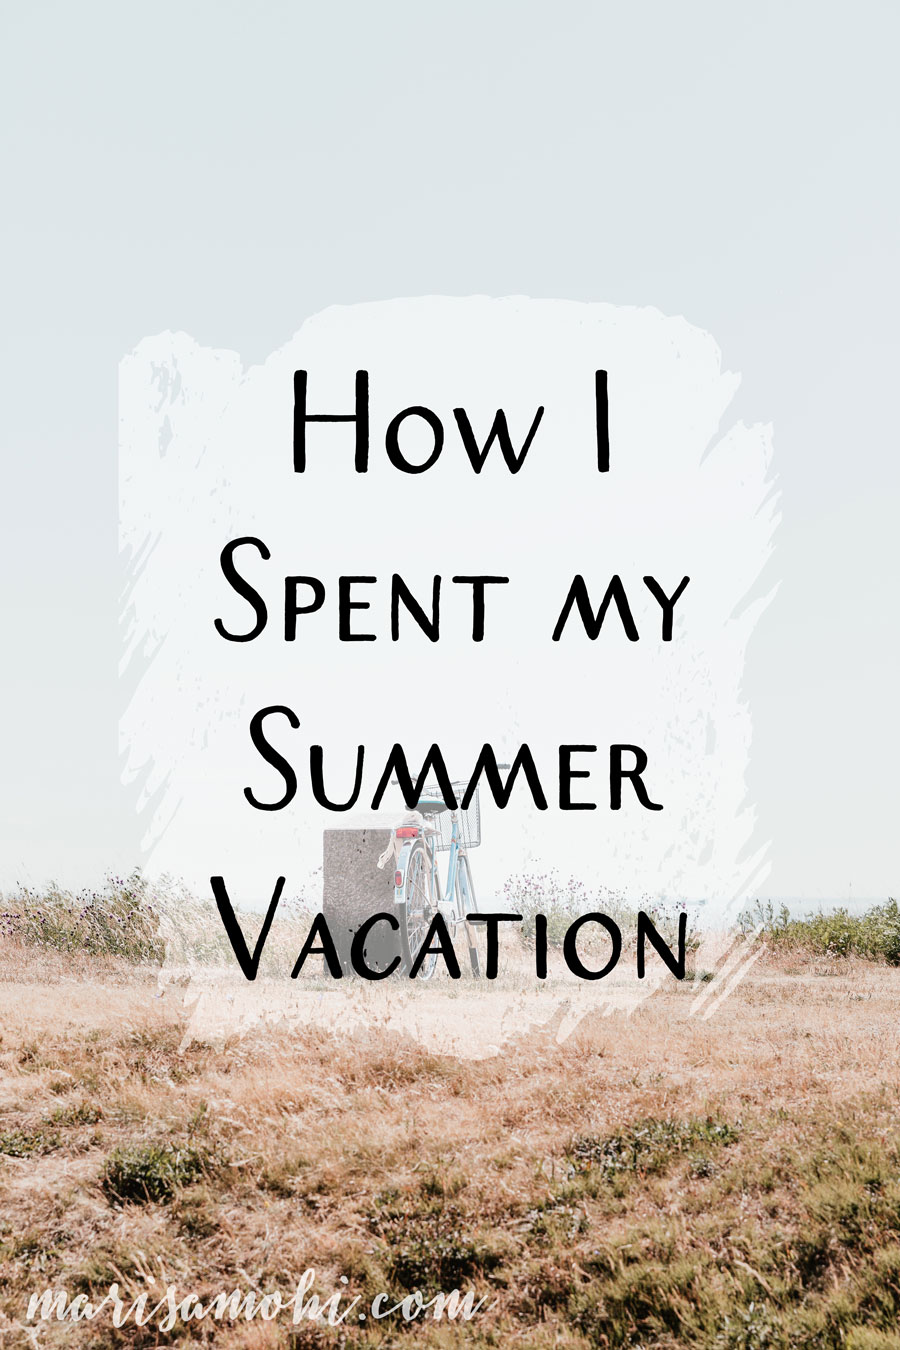 Essay on how i spent my summer vacation